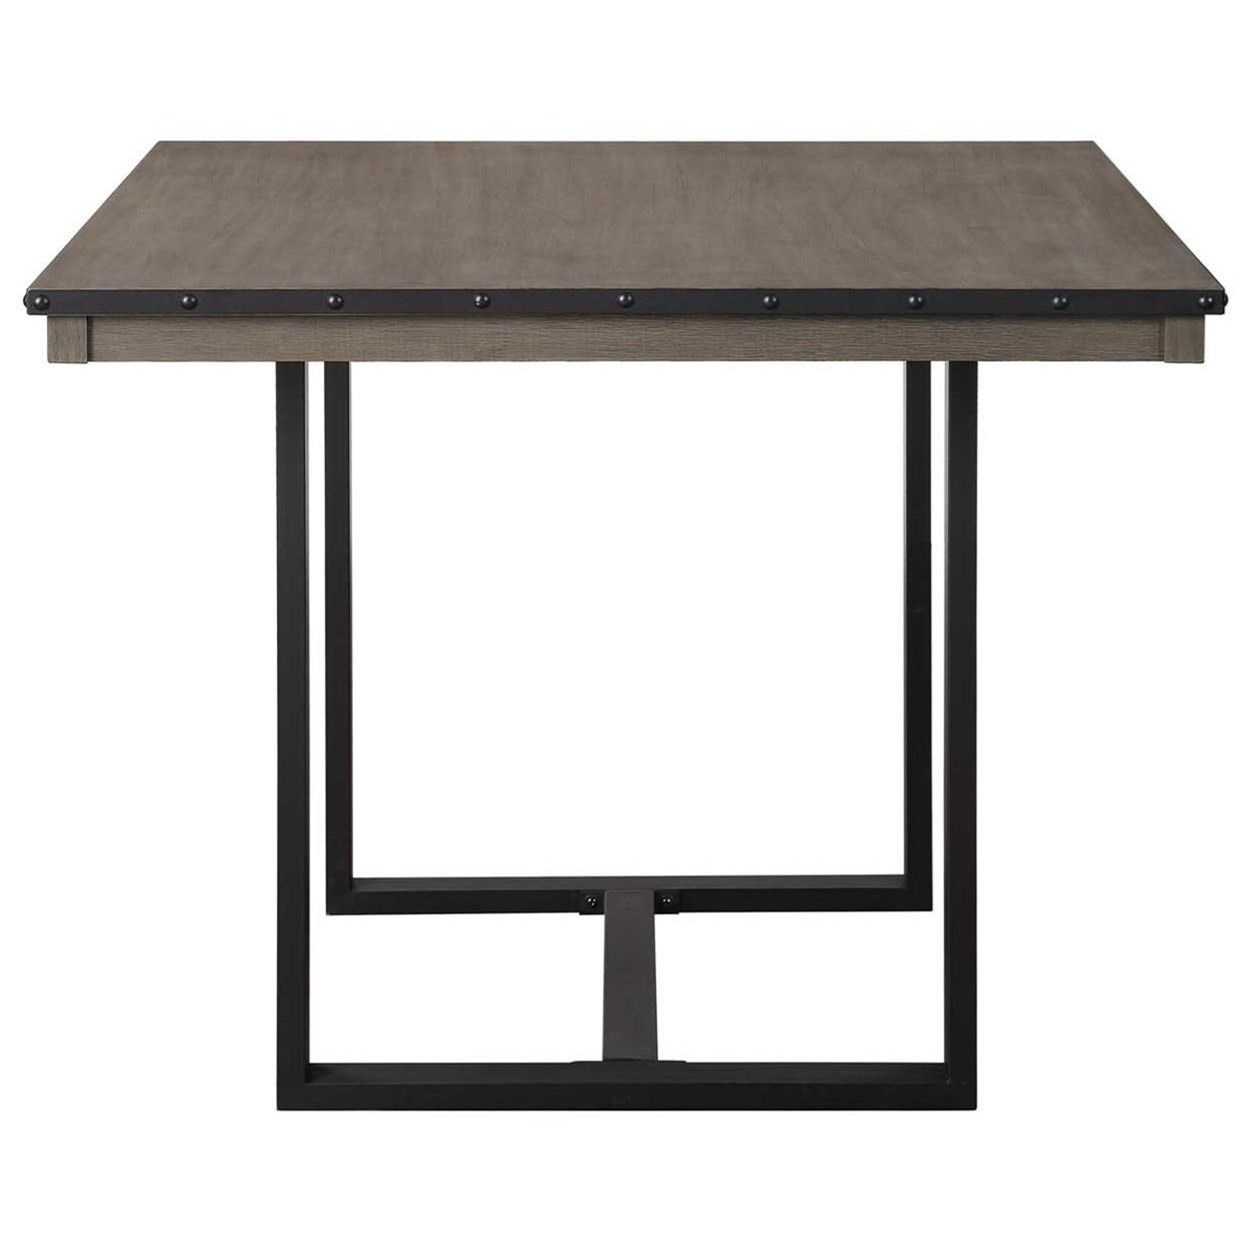 Lori 46-inch Square Dining Table by Steve Silver at Walker's Furniture